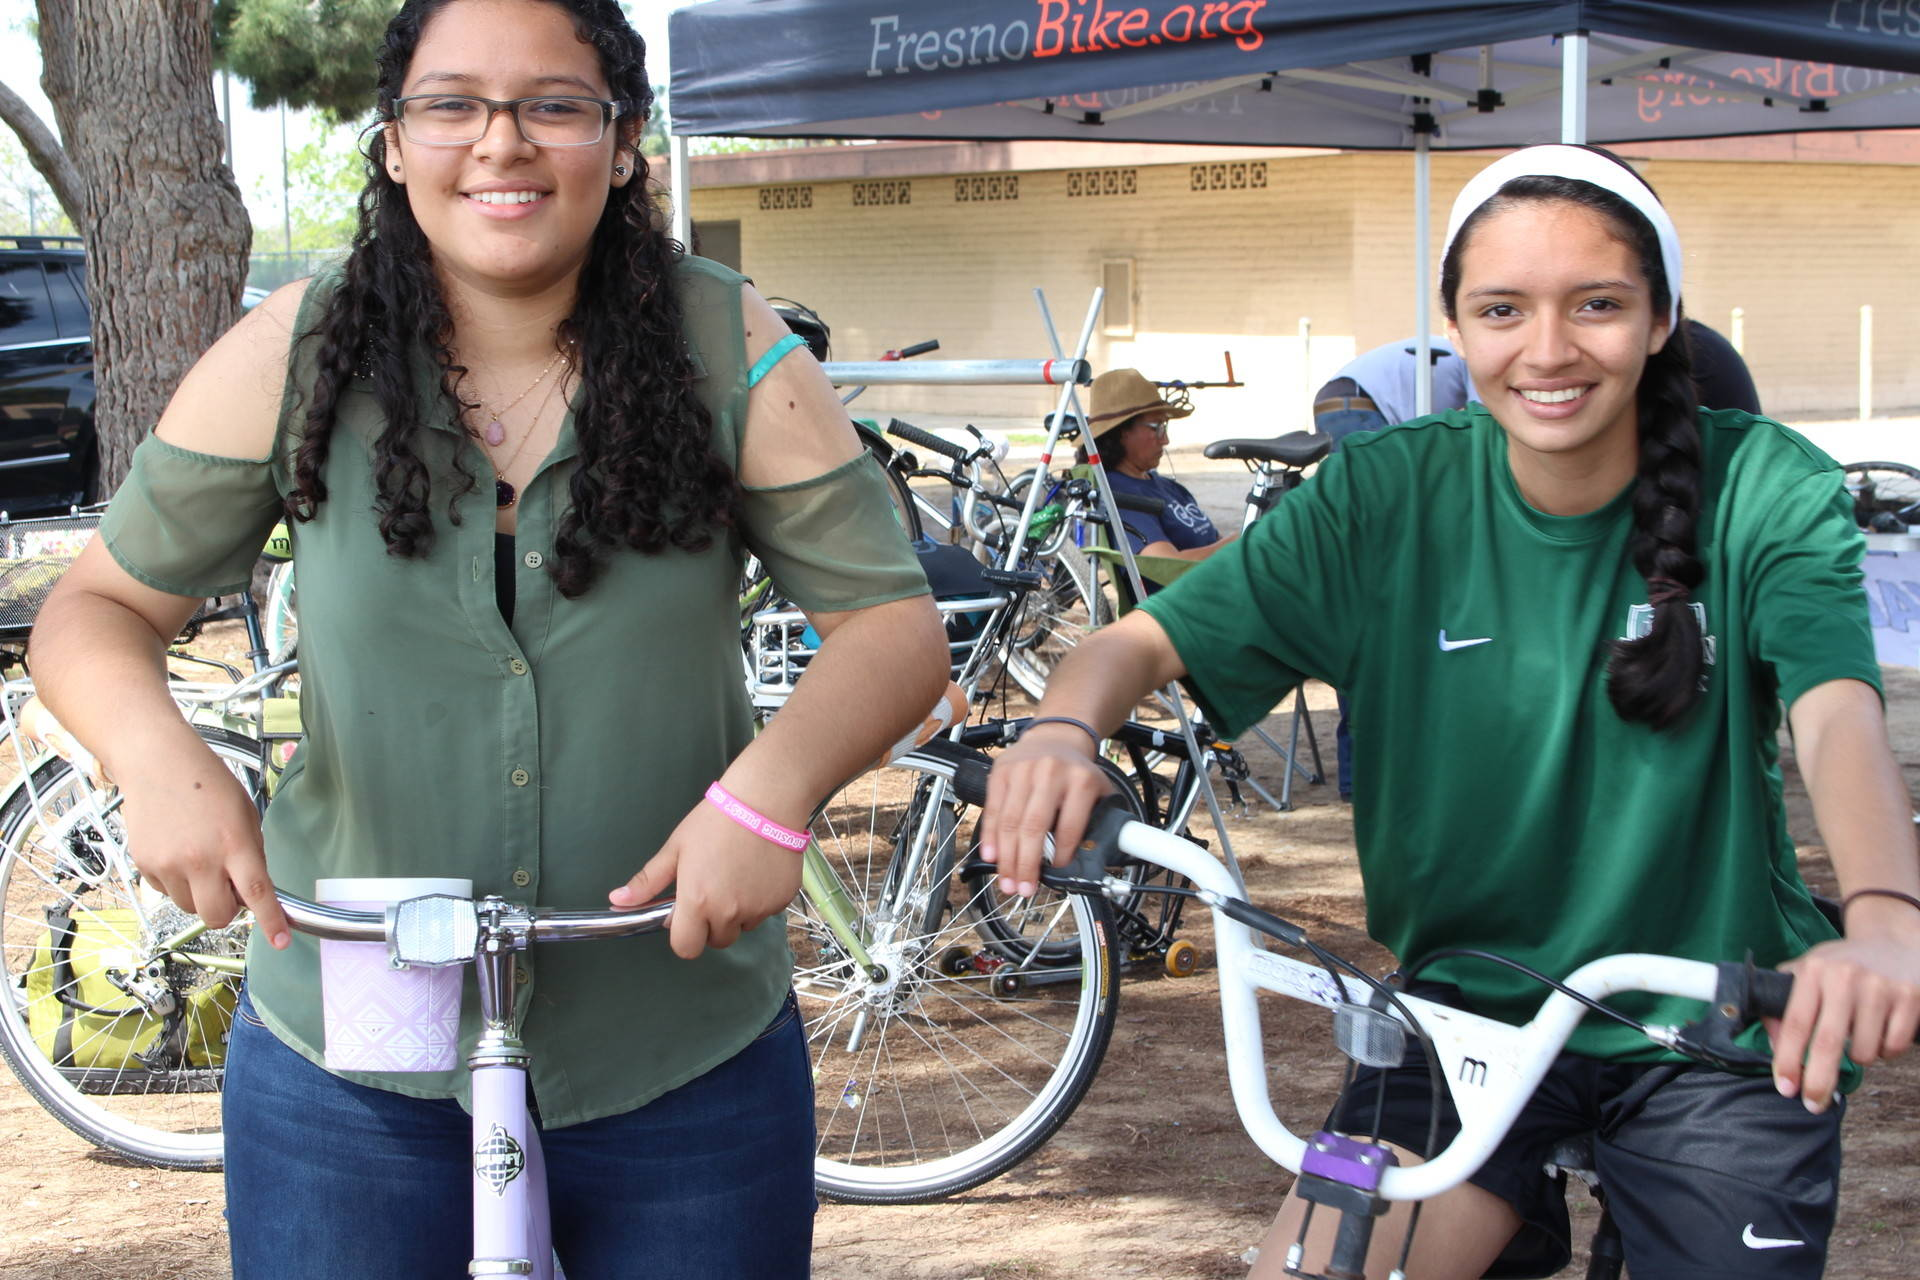 """Josemelli Ruiz, 15, and her sister Joanna Ruiz, 13, attend a free bike repair event at a park in south Fresno. Both teens consider biking to school """"too dangerous"""" due to a lack of bike lanes."""